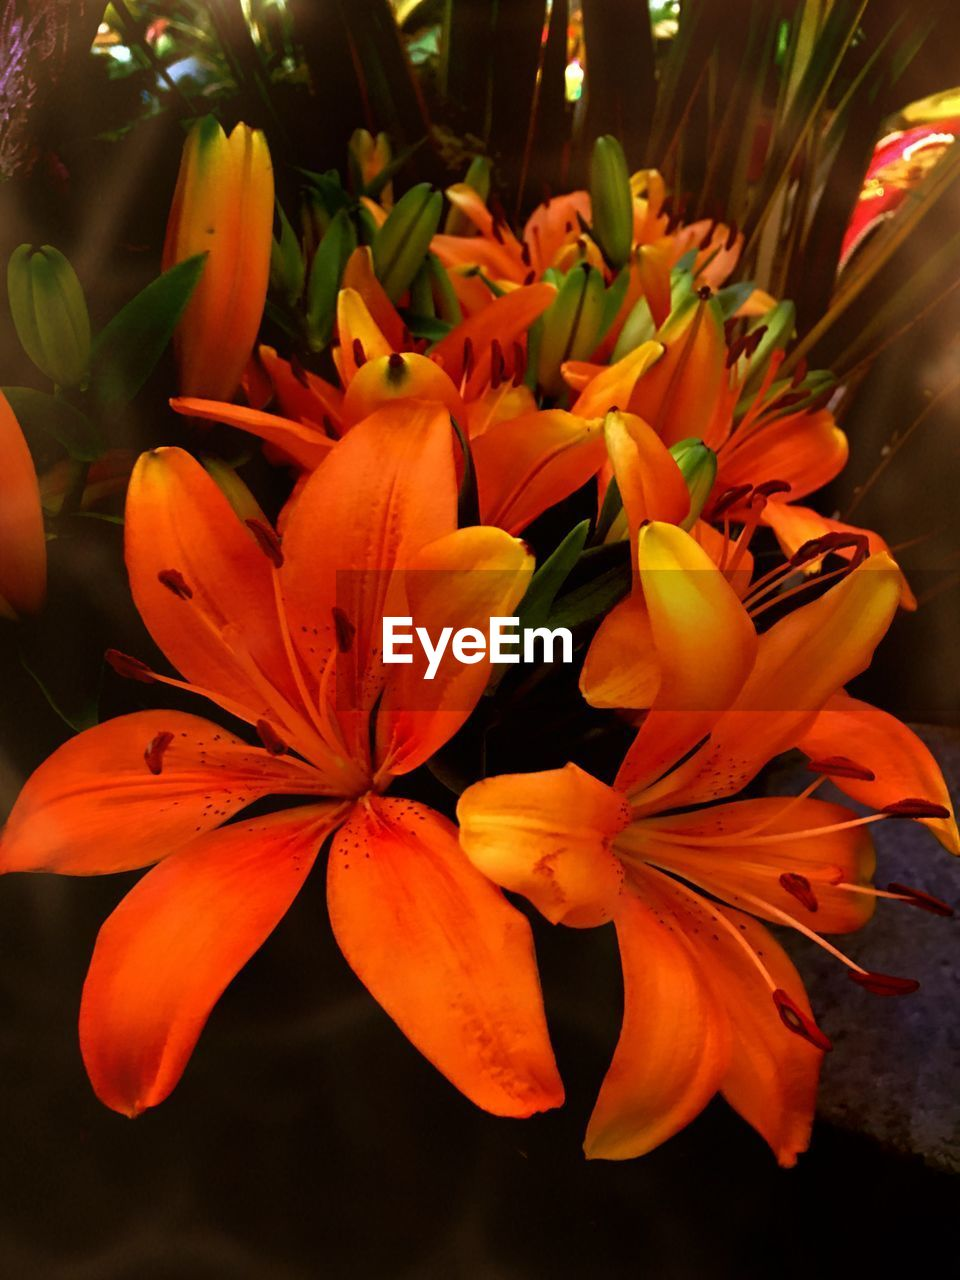 flowering plant, flower, plant, petal, fragility, beauty in nature, vulnerability, freshness, close-up, growth, flower head, inflorescence, orange color, no people, nature, focus on foreground, botany, pollen, outdoors, day, bunch of flowers